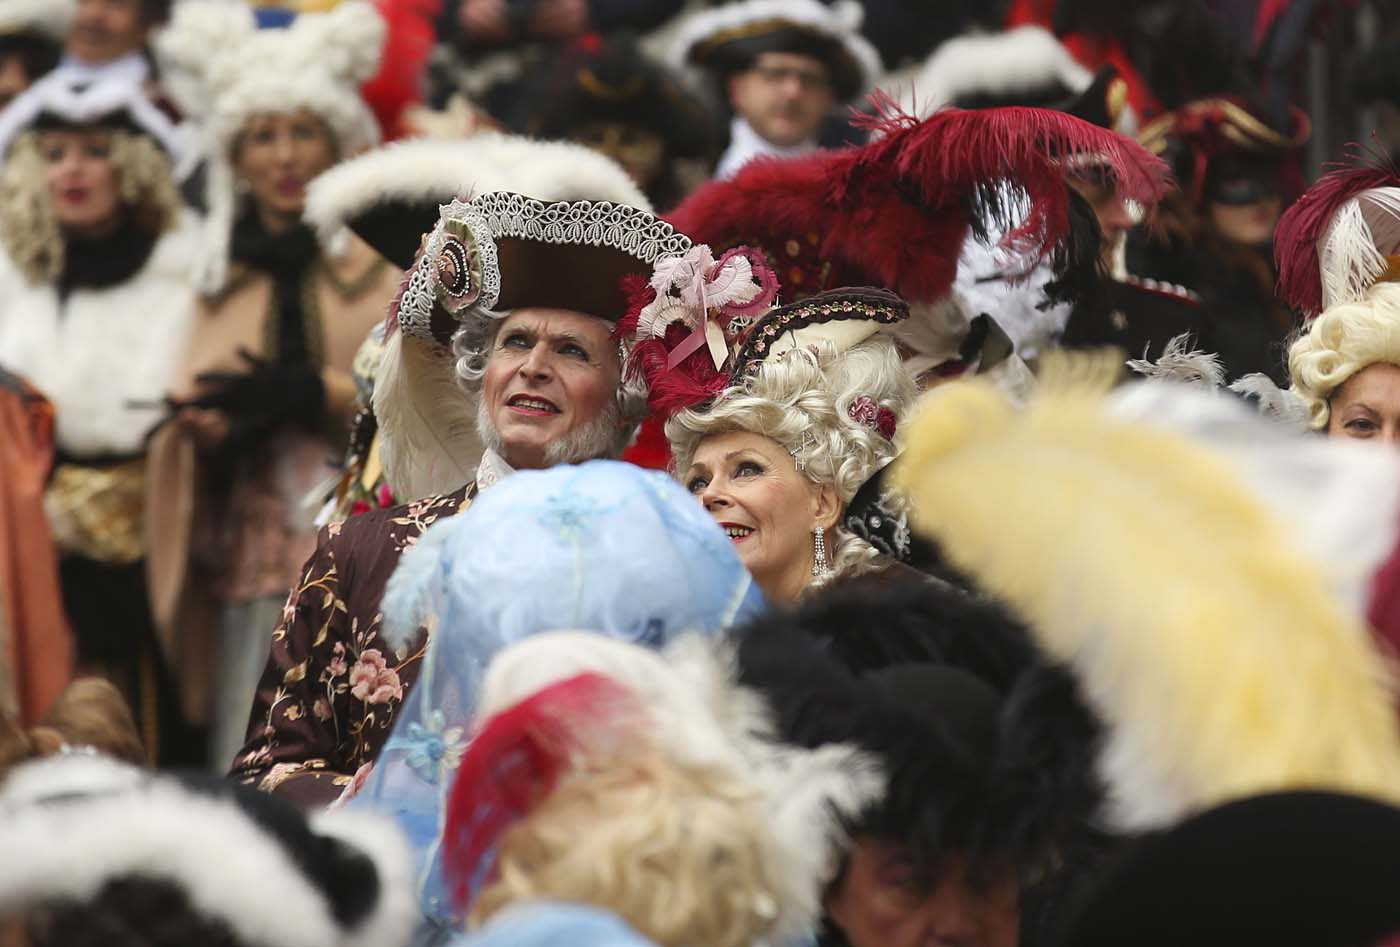 Revellers watch as the traditional Columbine descends from Saint Mark's tower bell on an iron cable during the Venice Carnival, January 31, 2016. REUTERS/Alessandro Bianchi